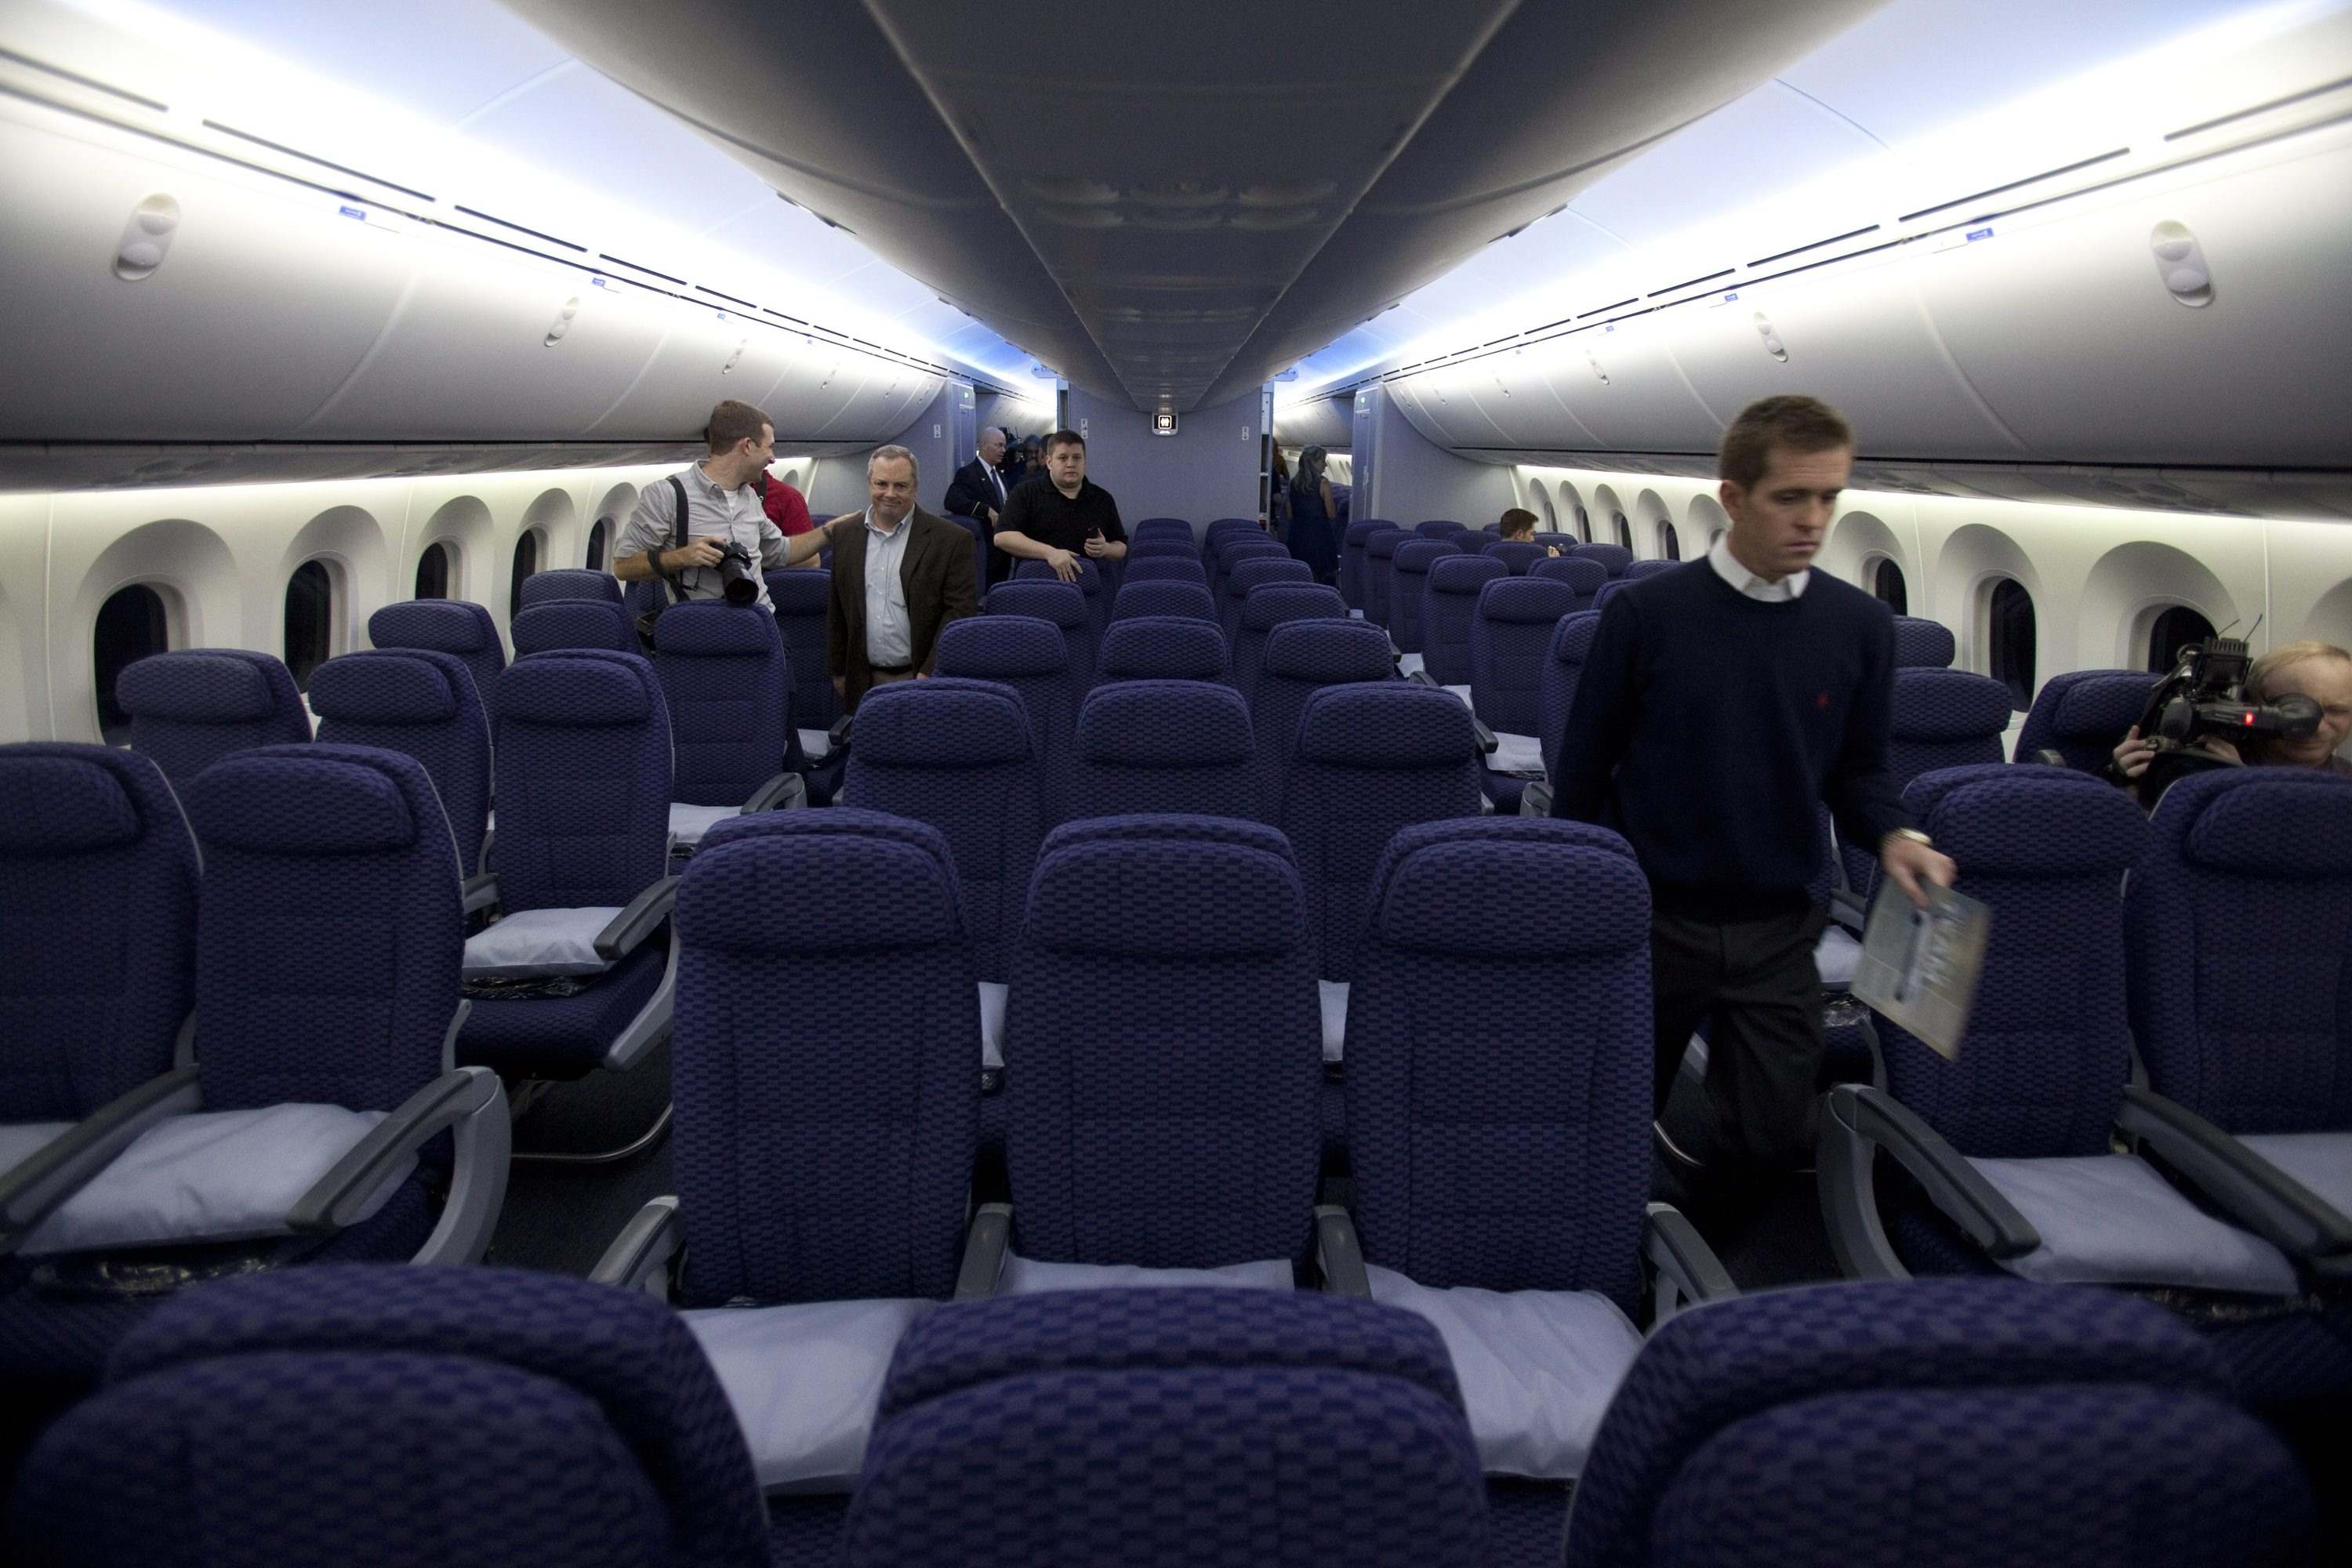 Think about factors like legroom, baggage fees, frequent-flier programs and in-flight amenities when booking a flight.